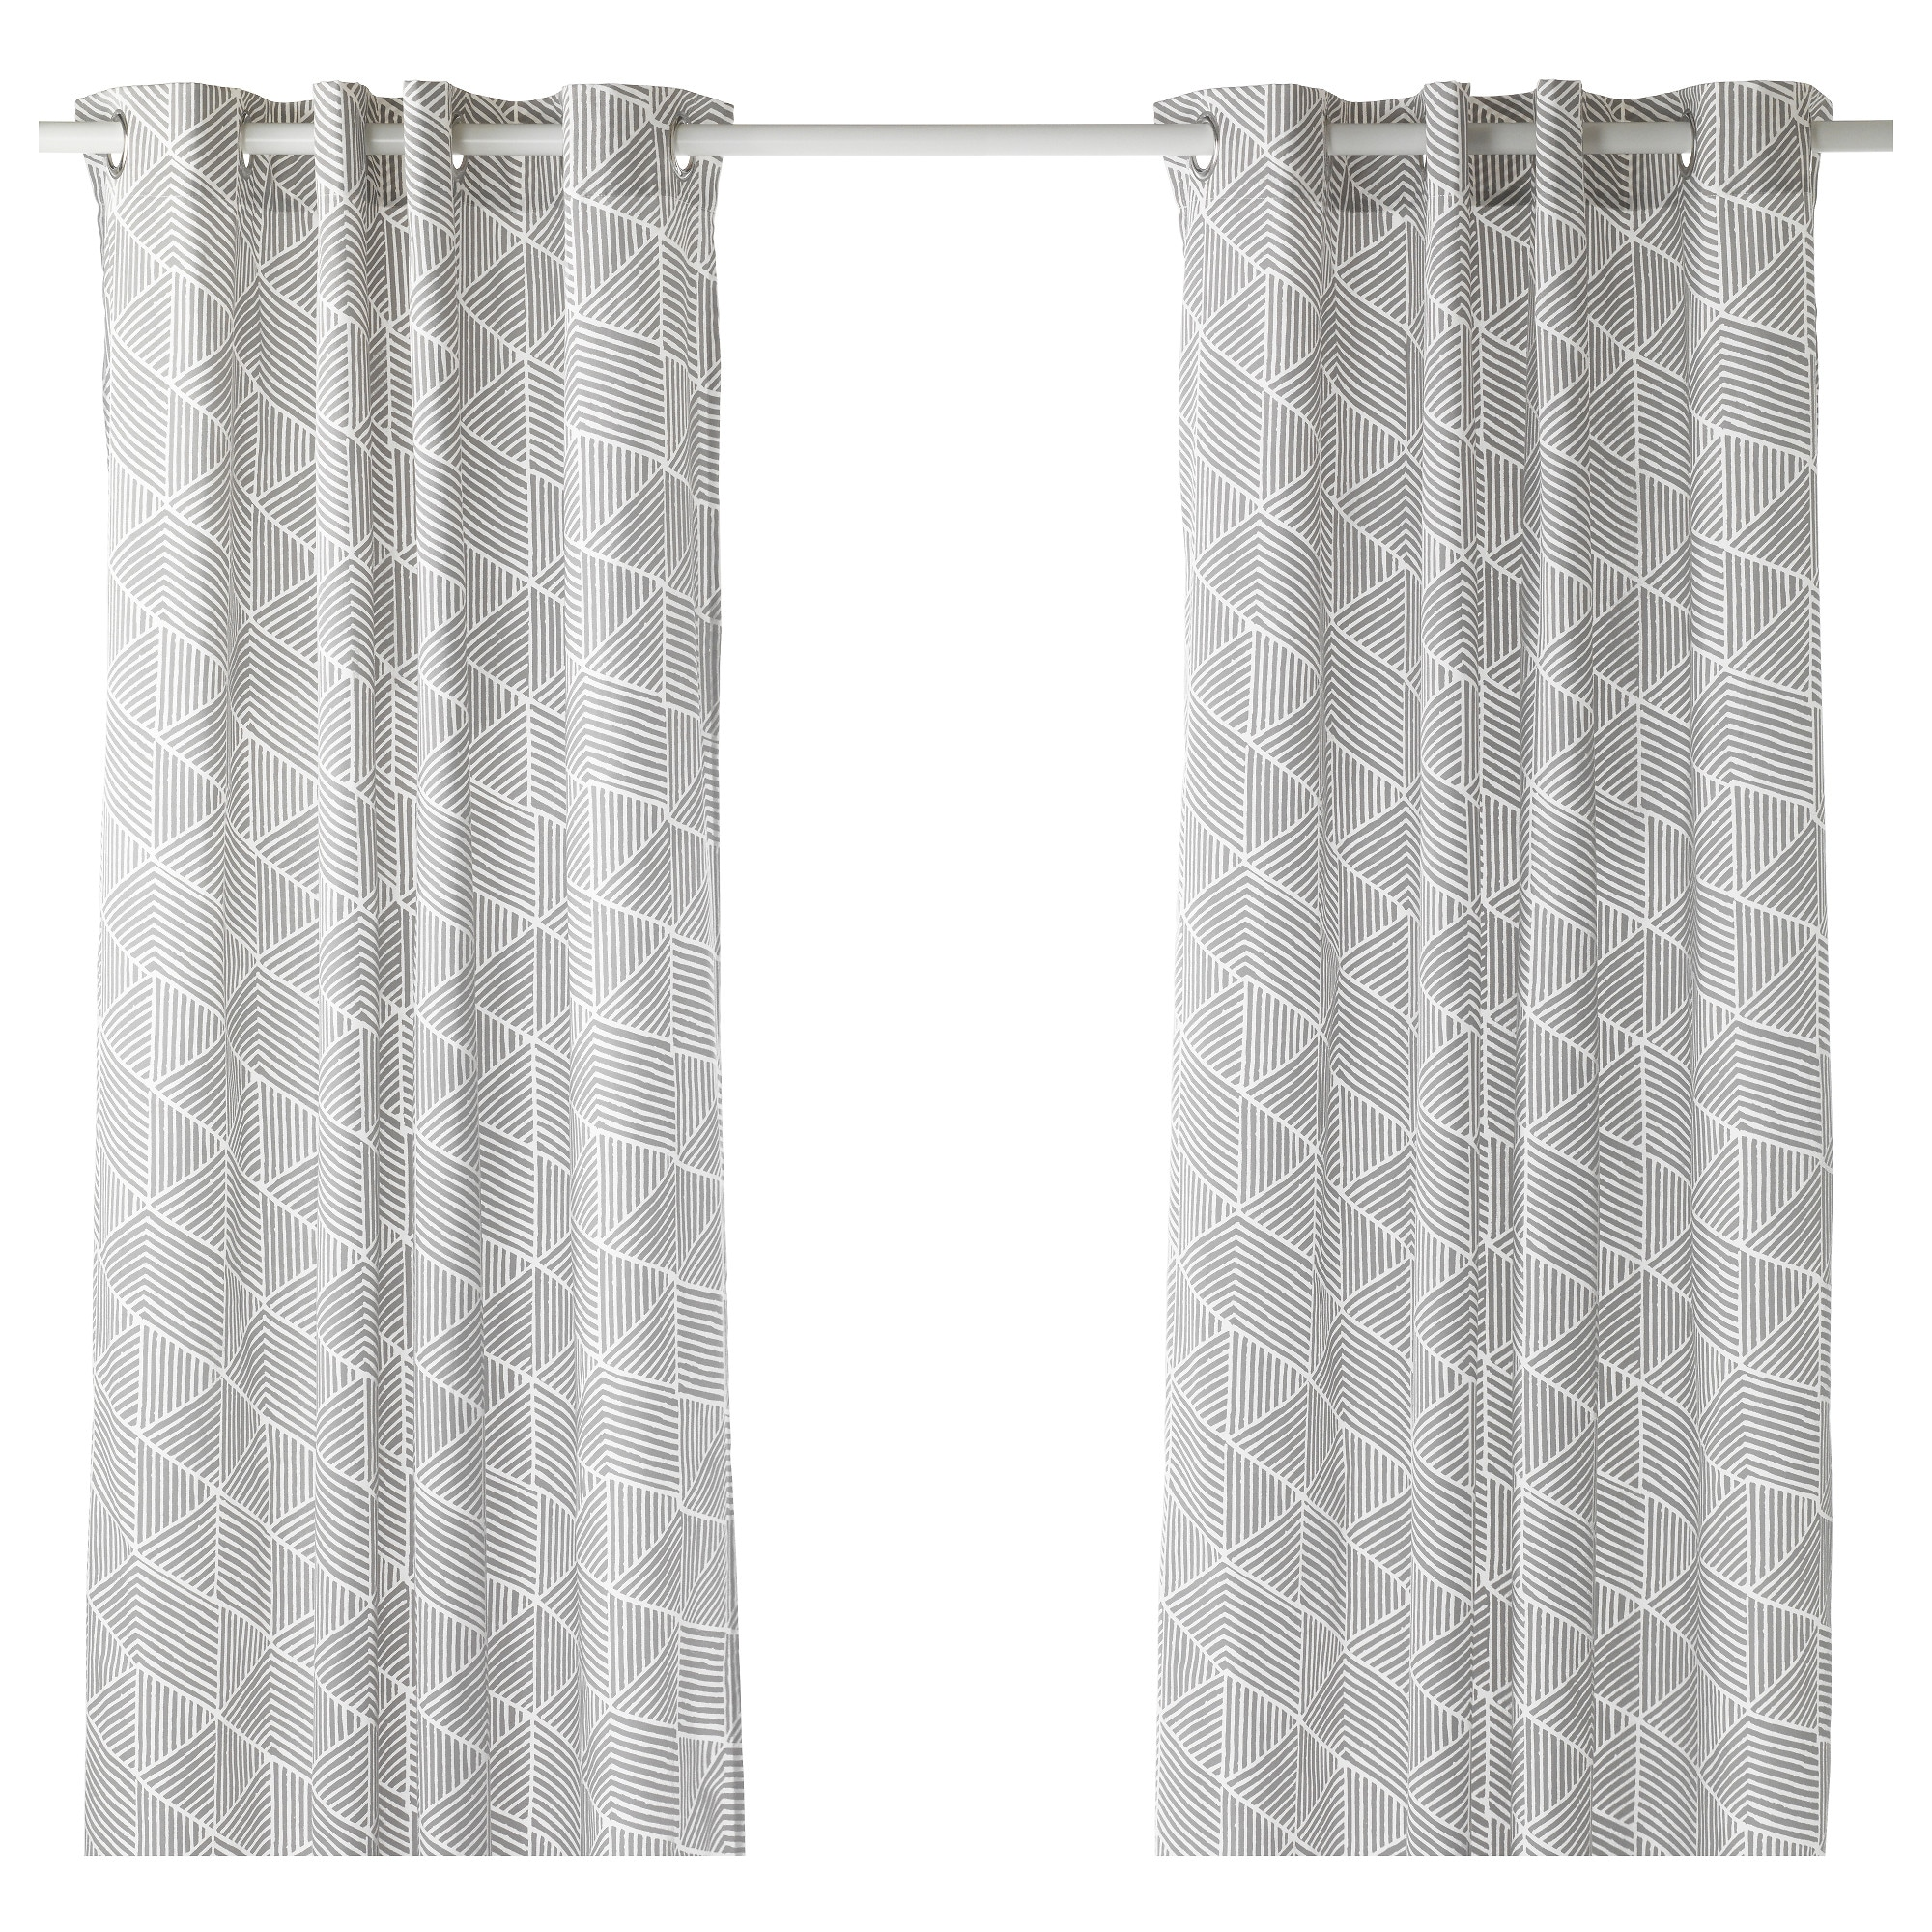 White curtains bedroom - Nunner Rt Curtains 1 Pair Gray White Length 98 Width 57